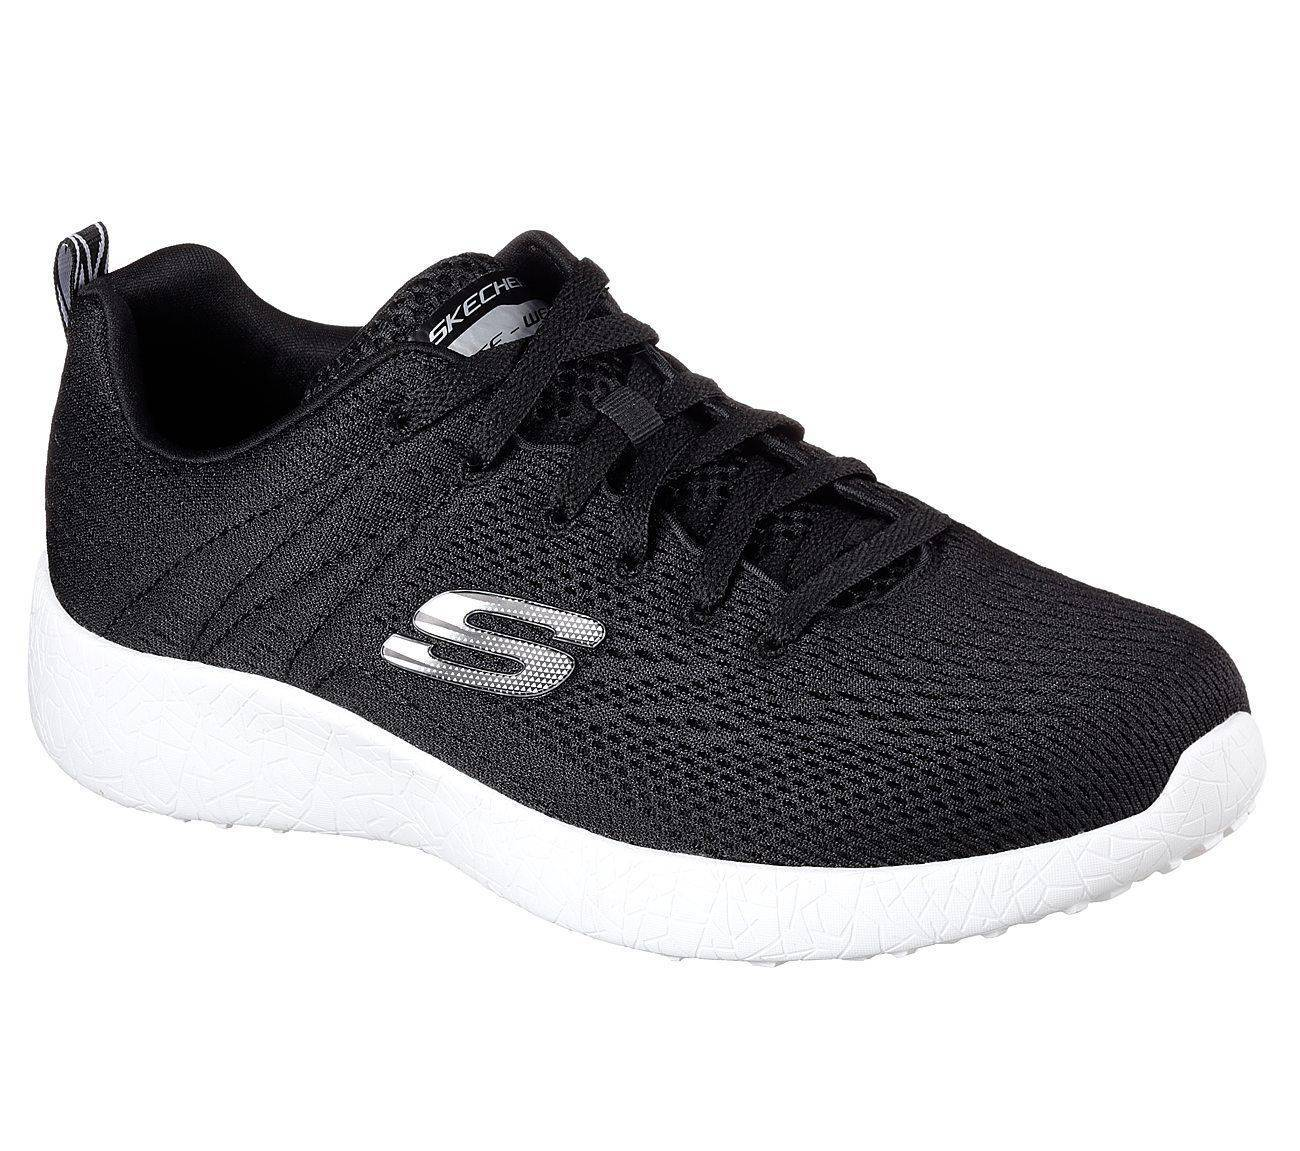 Skechers Mens Black and White Energy Burst Training Shoes -11